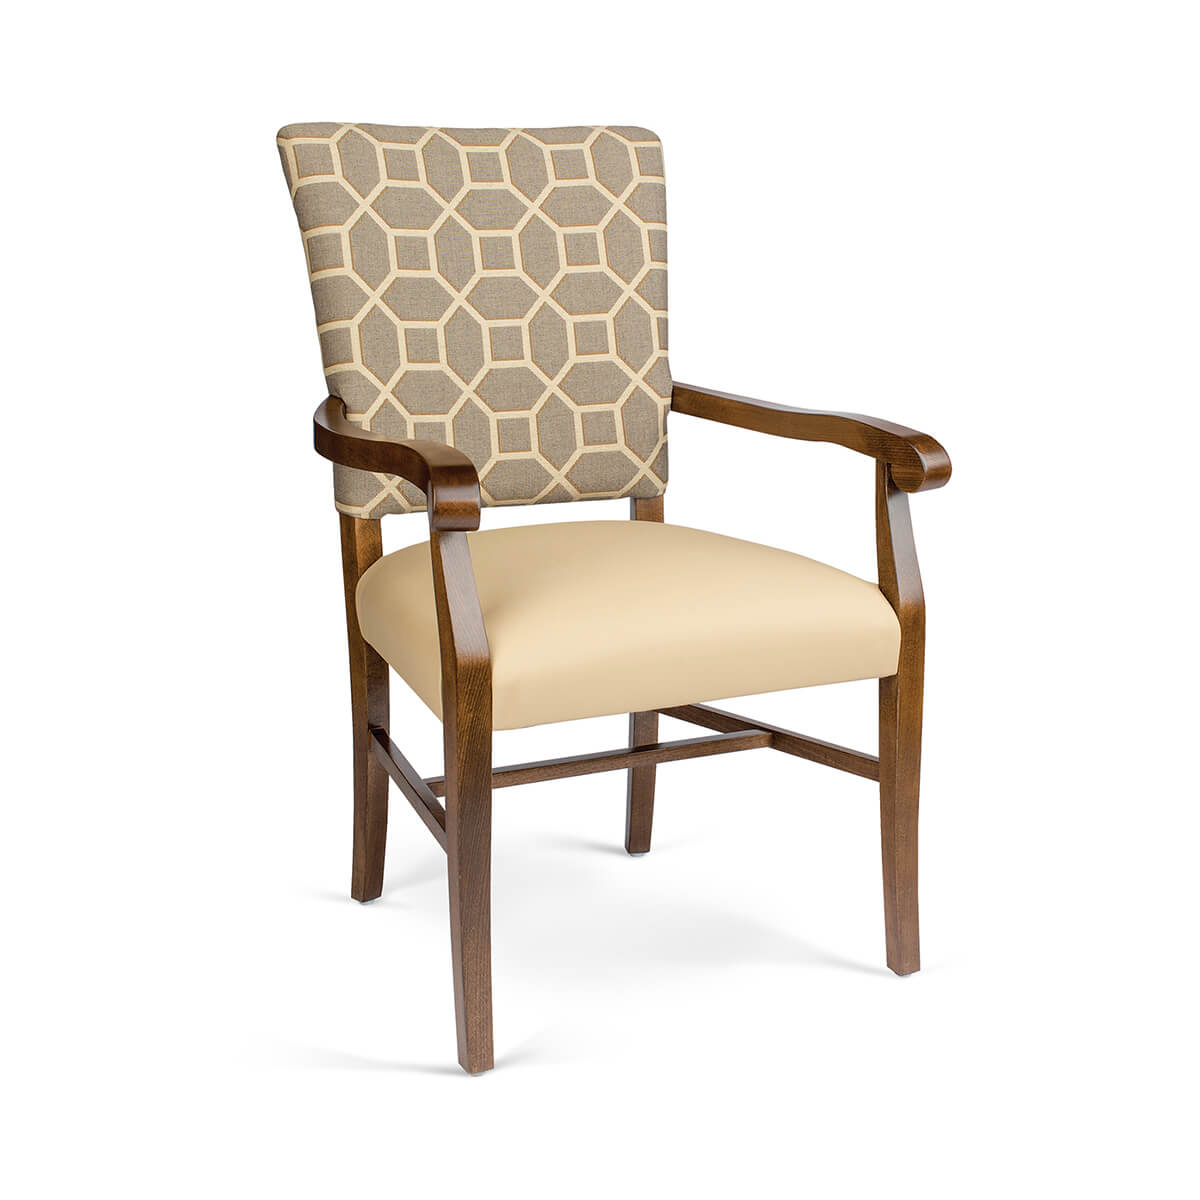 _0000s_0005_Remy Accent Armchair_1920